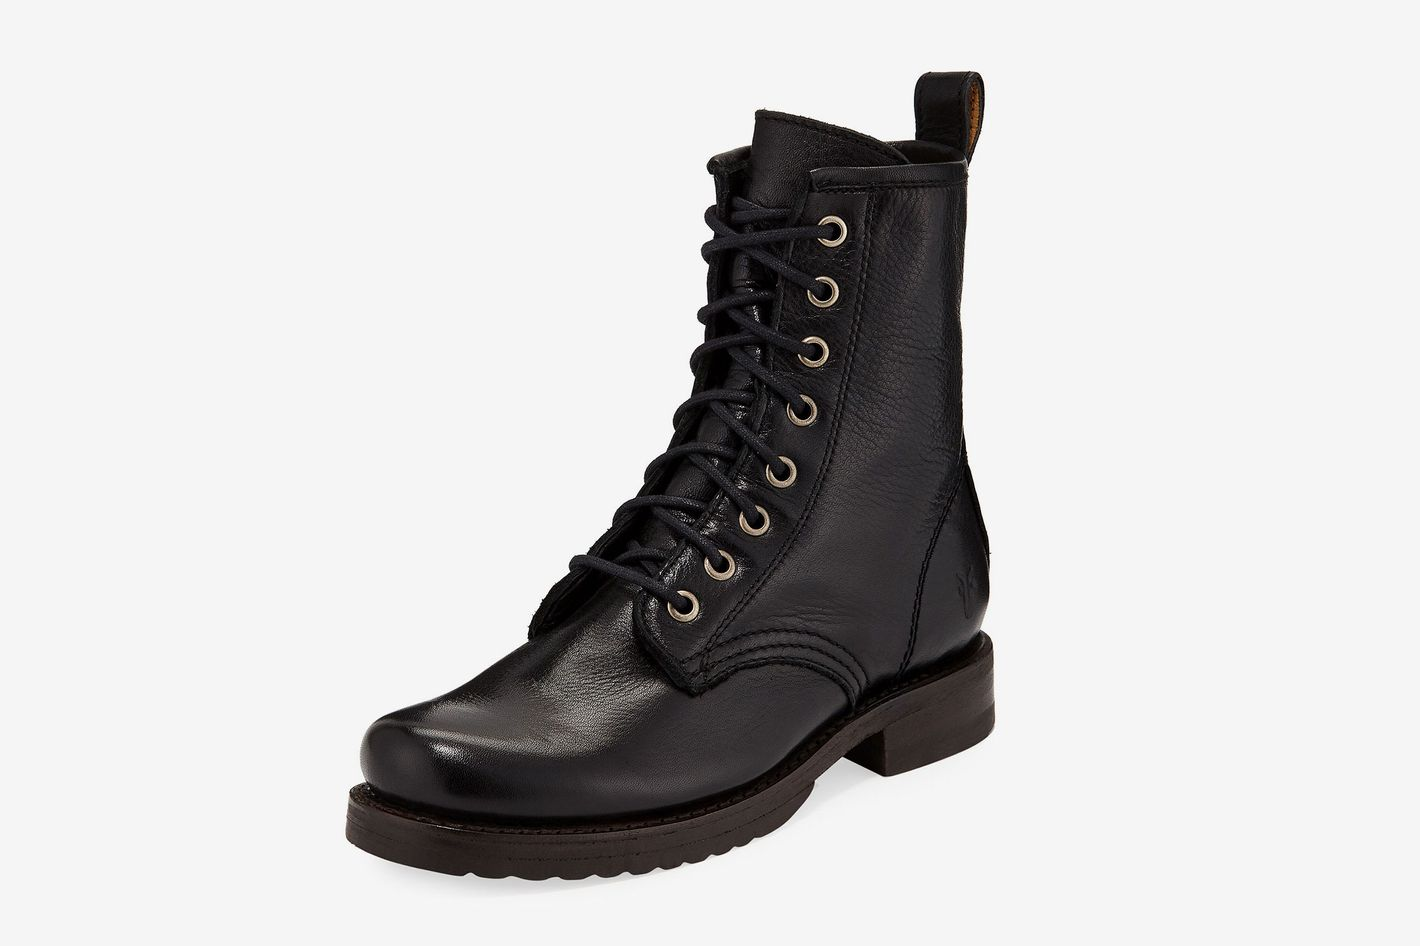 1a974af97 Frye Women's Boots on Sale at Neiman Marcus: 2018